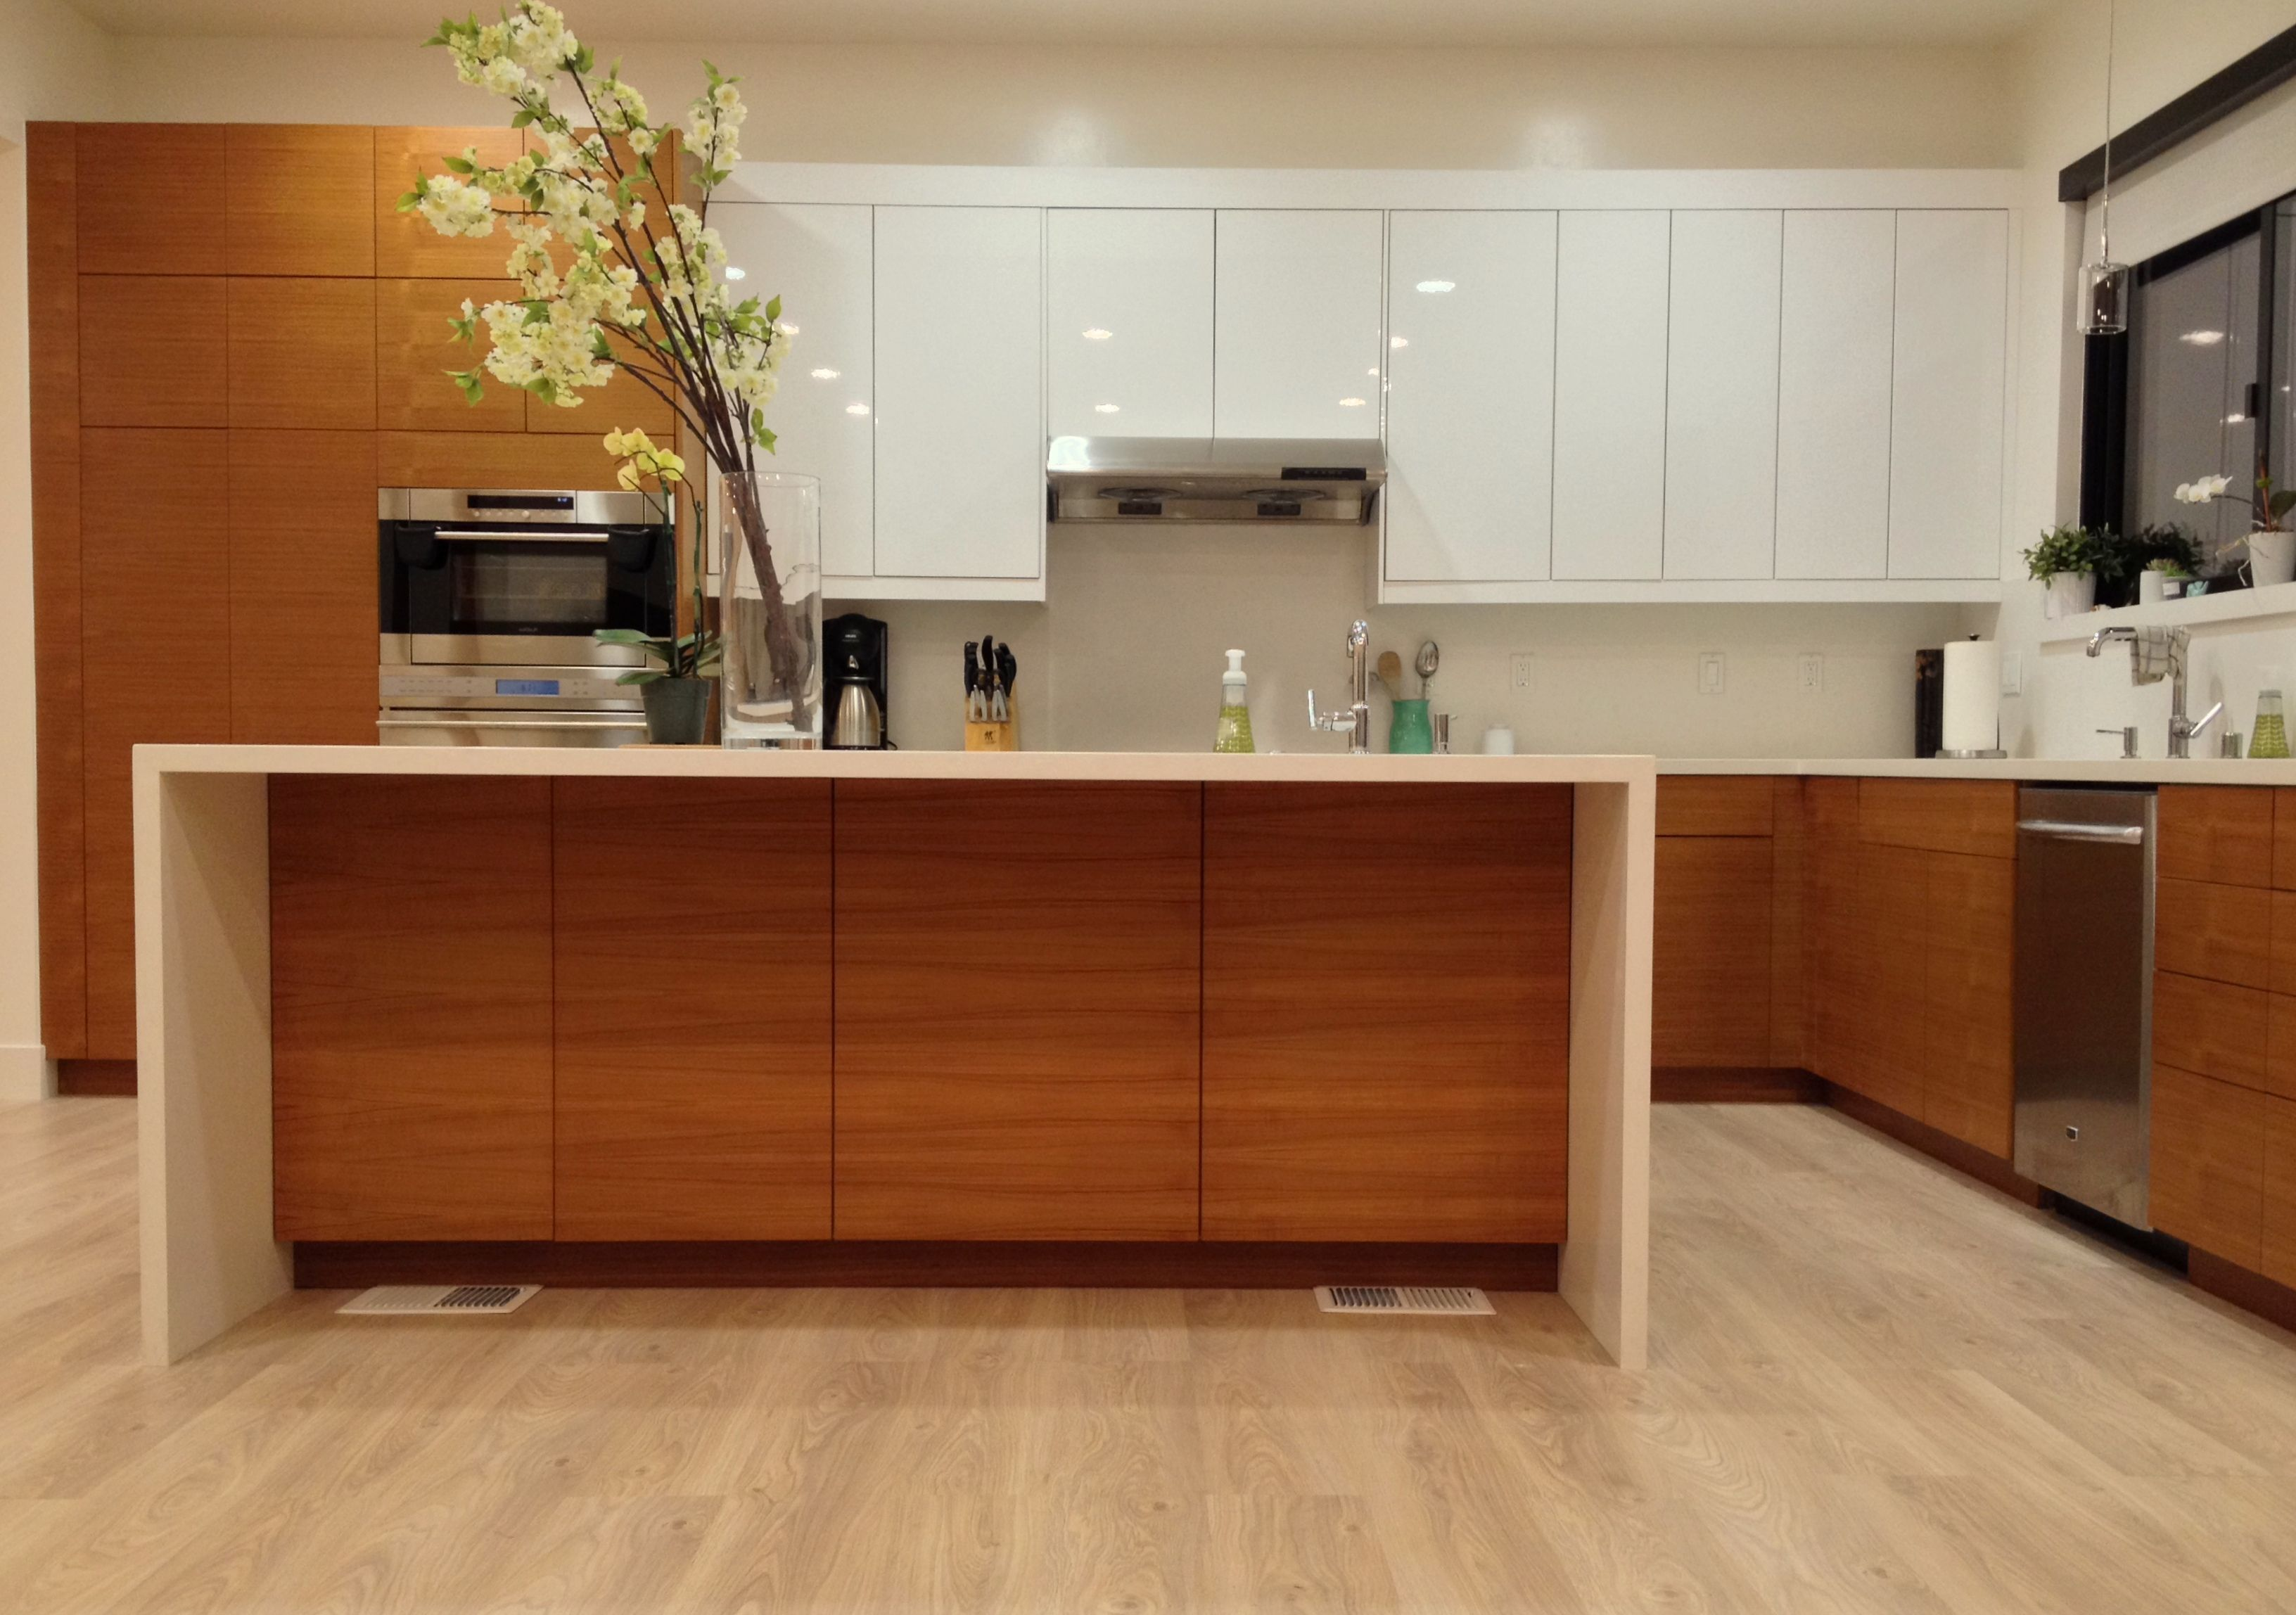 Teak Kitchen Cabinets Movable Ikea With Semihandmade Rift Fronts